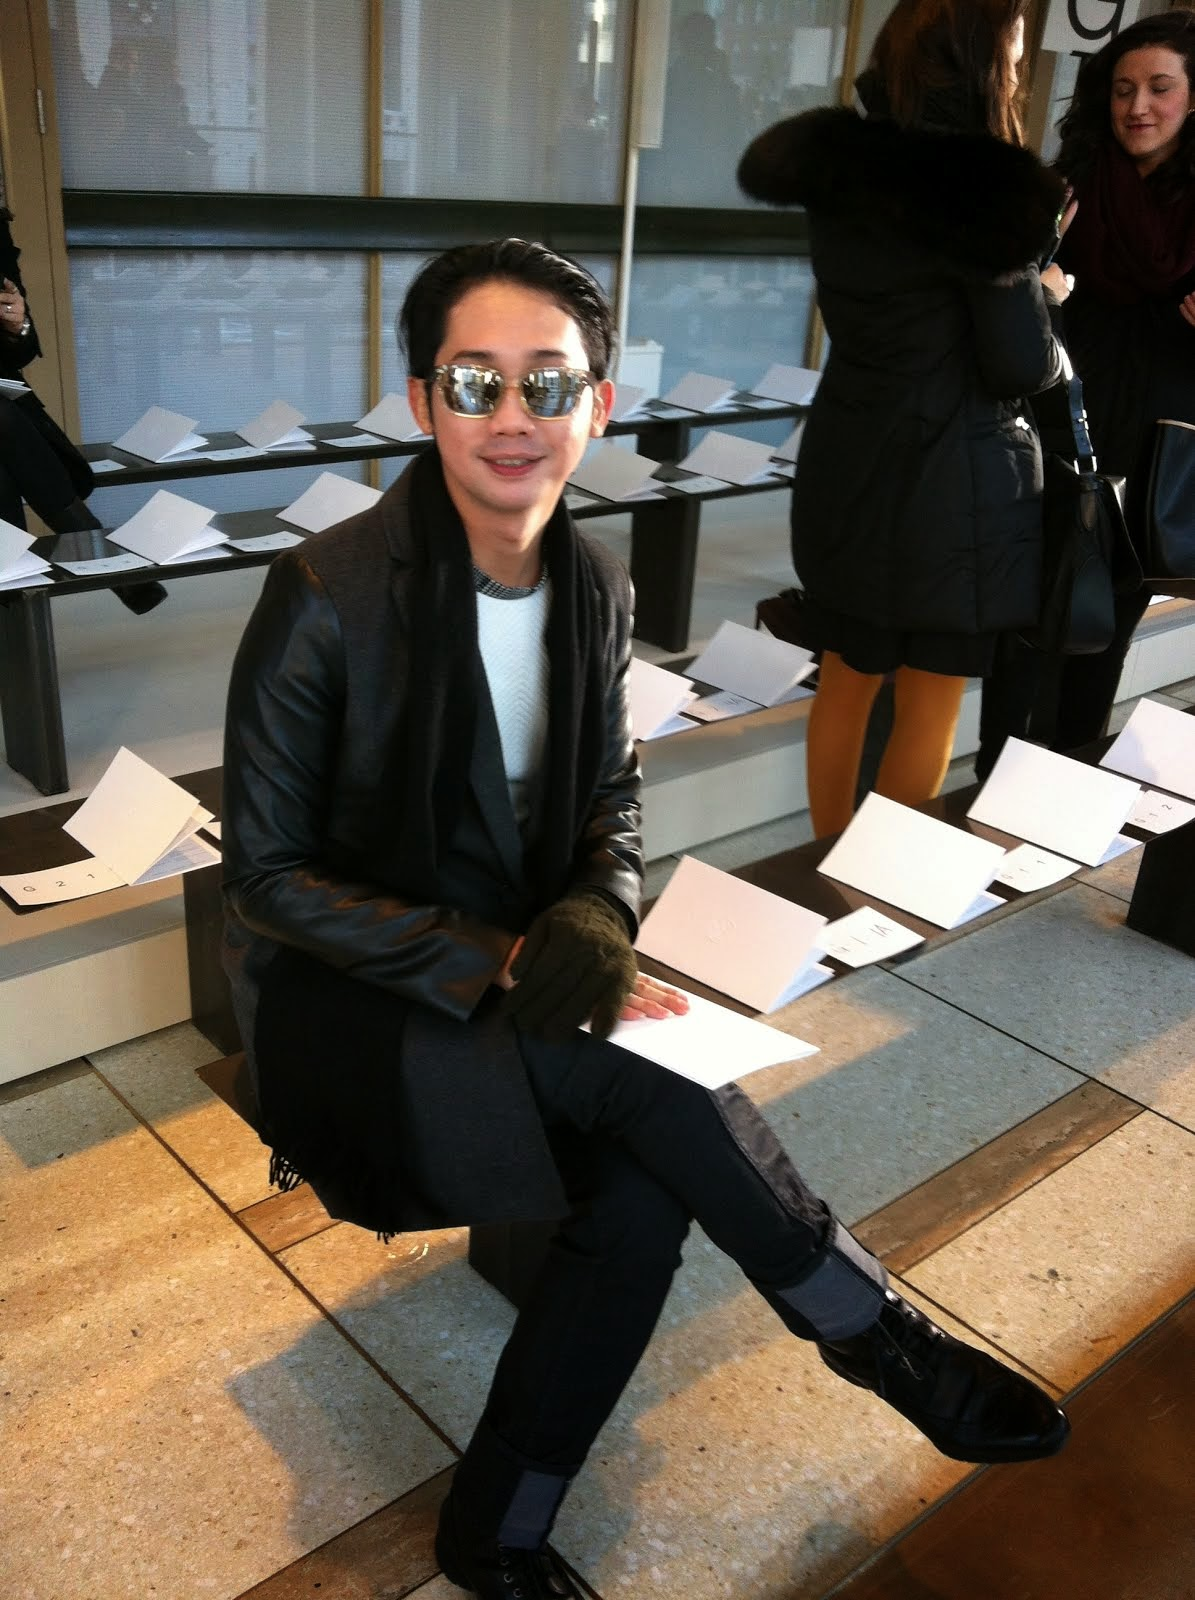 NEW YORK FASHION WEEK 2013